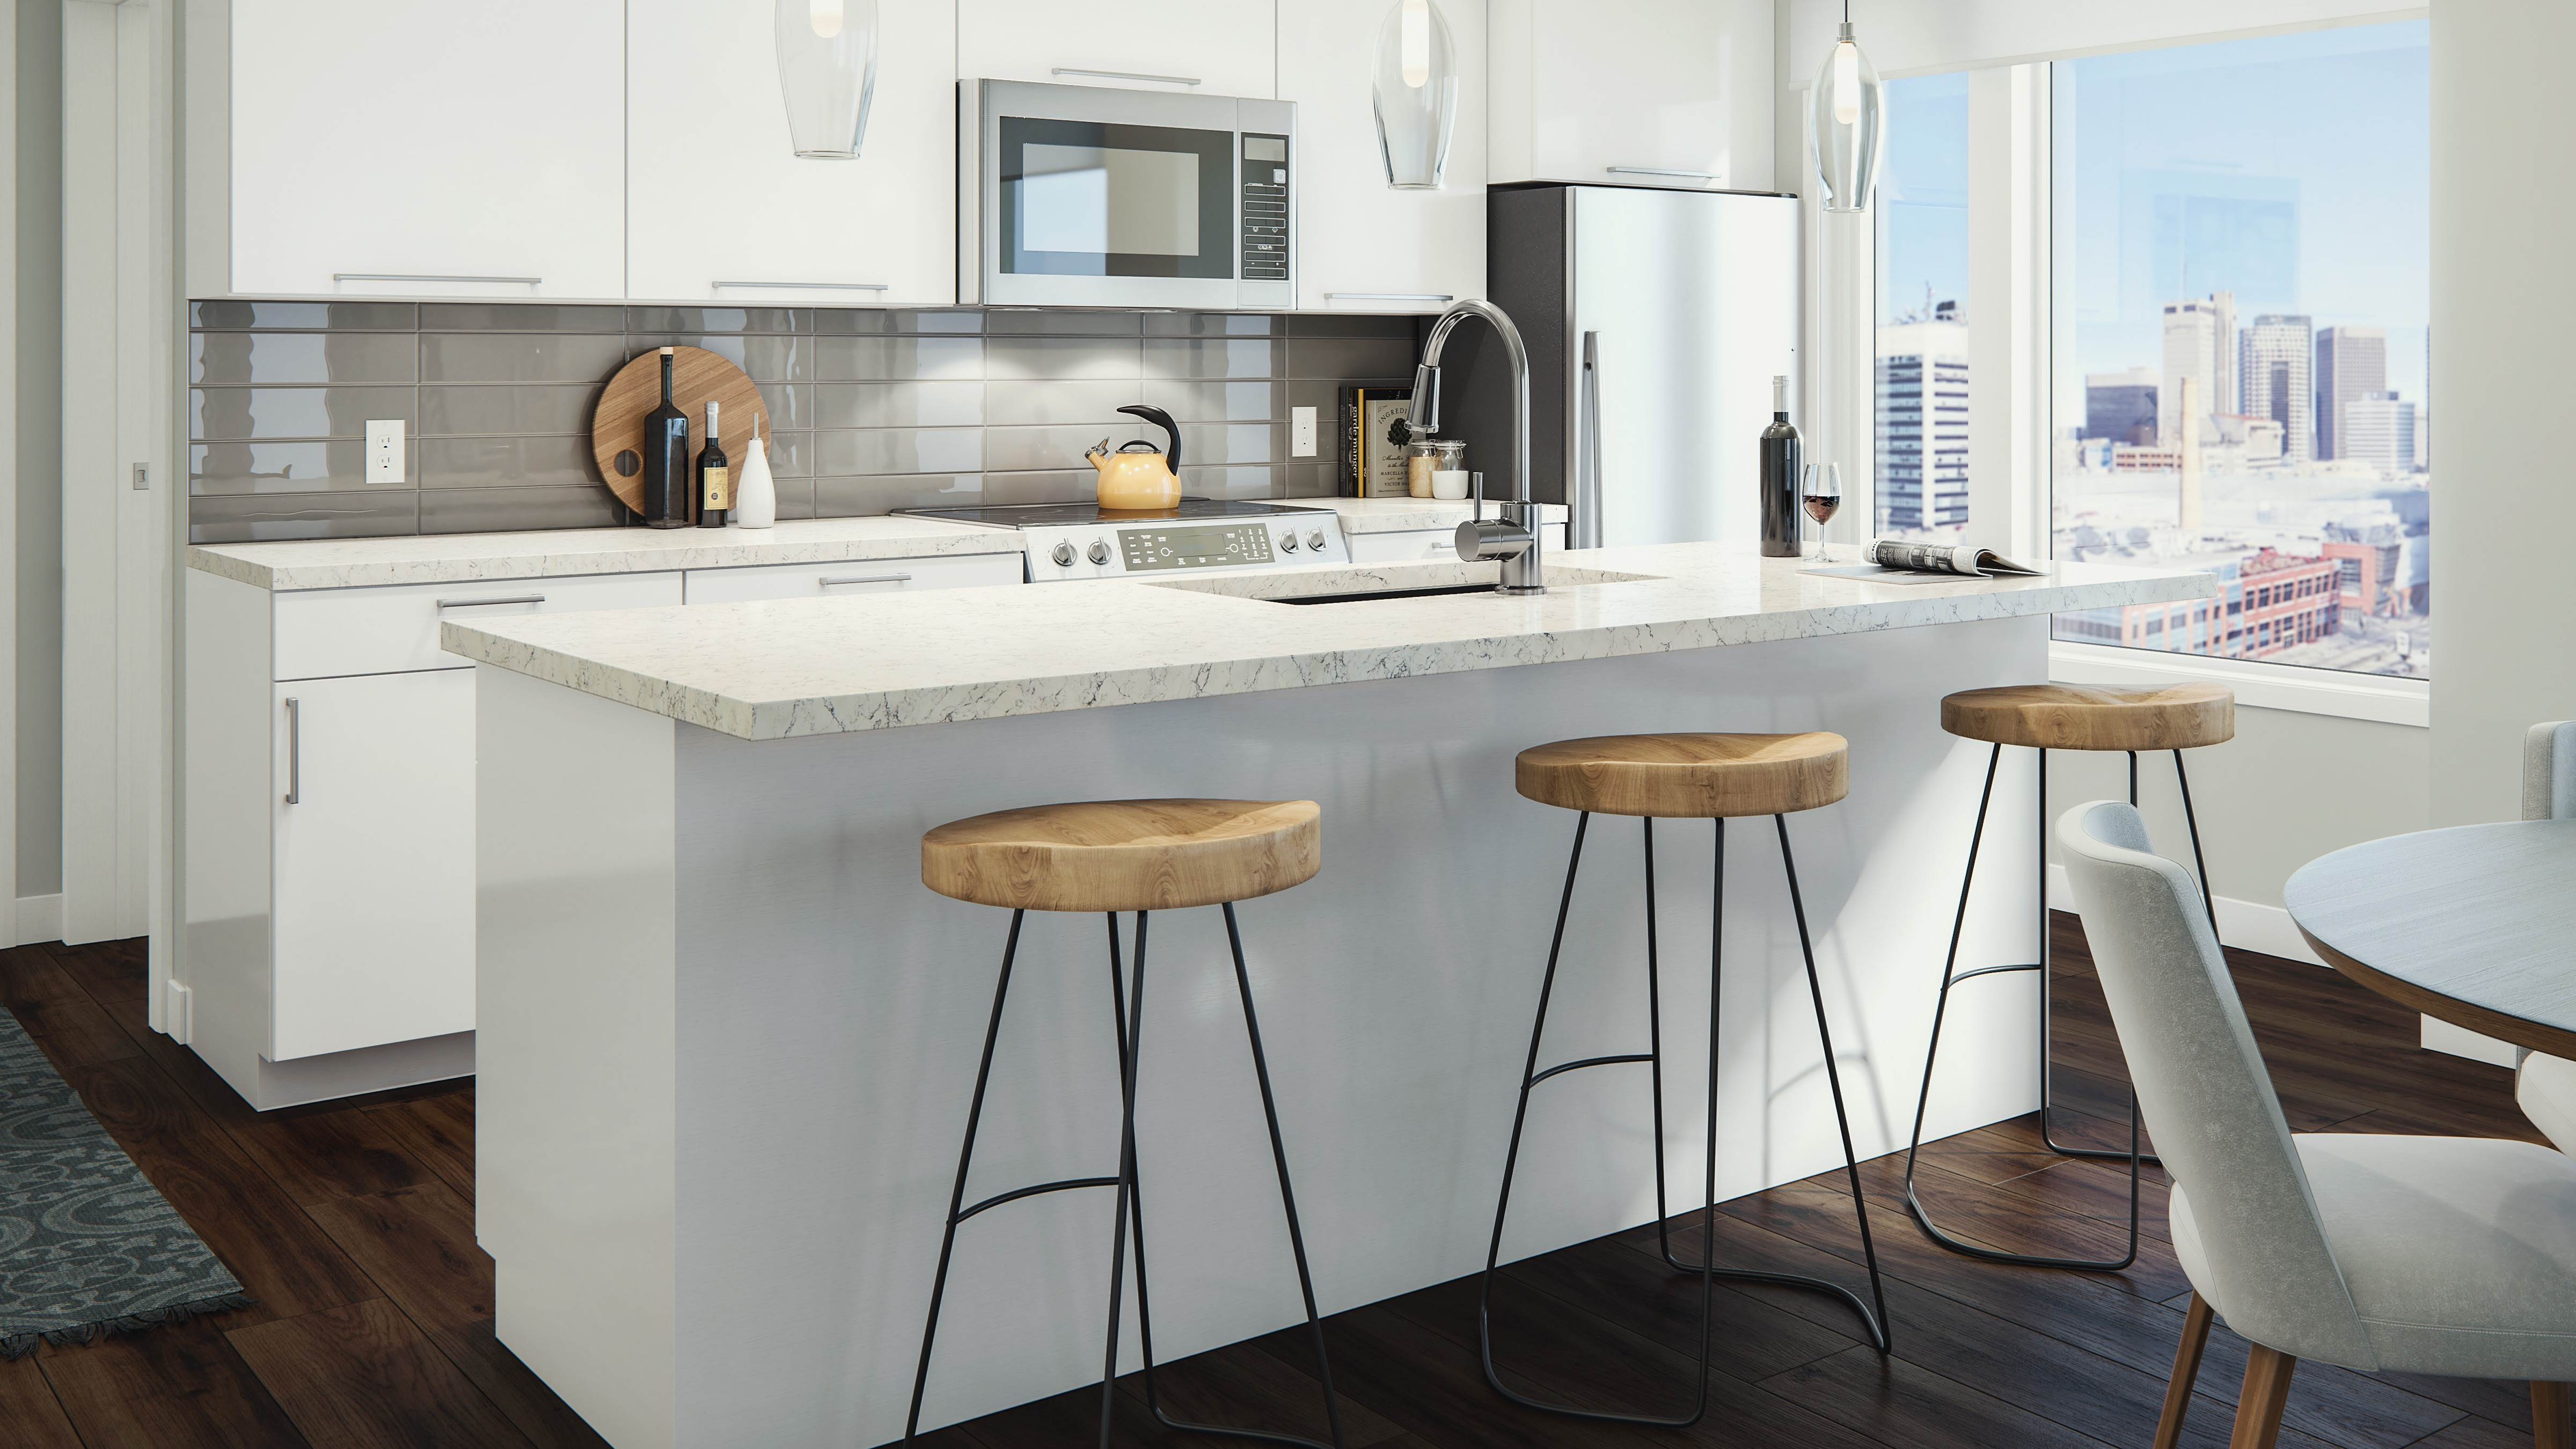 Interior of apartment suite's kitchen with island built in appliances and bar stools